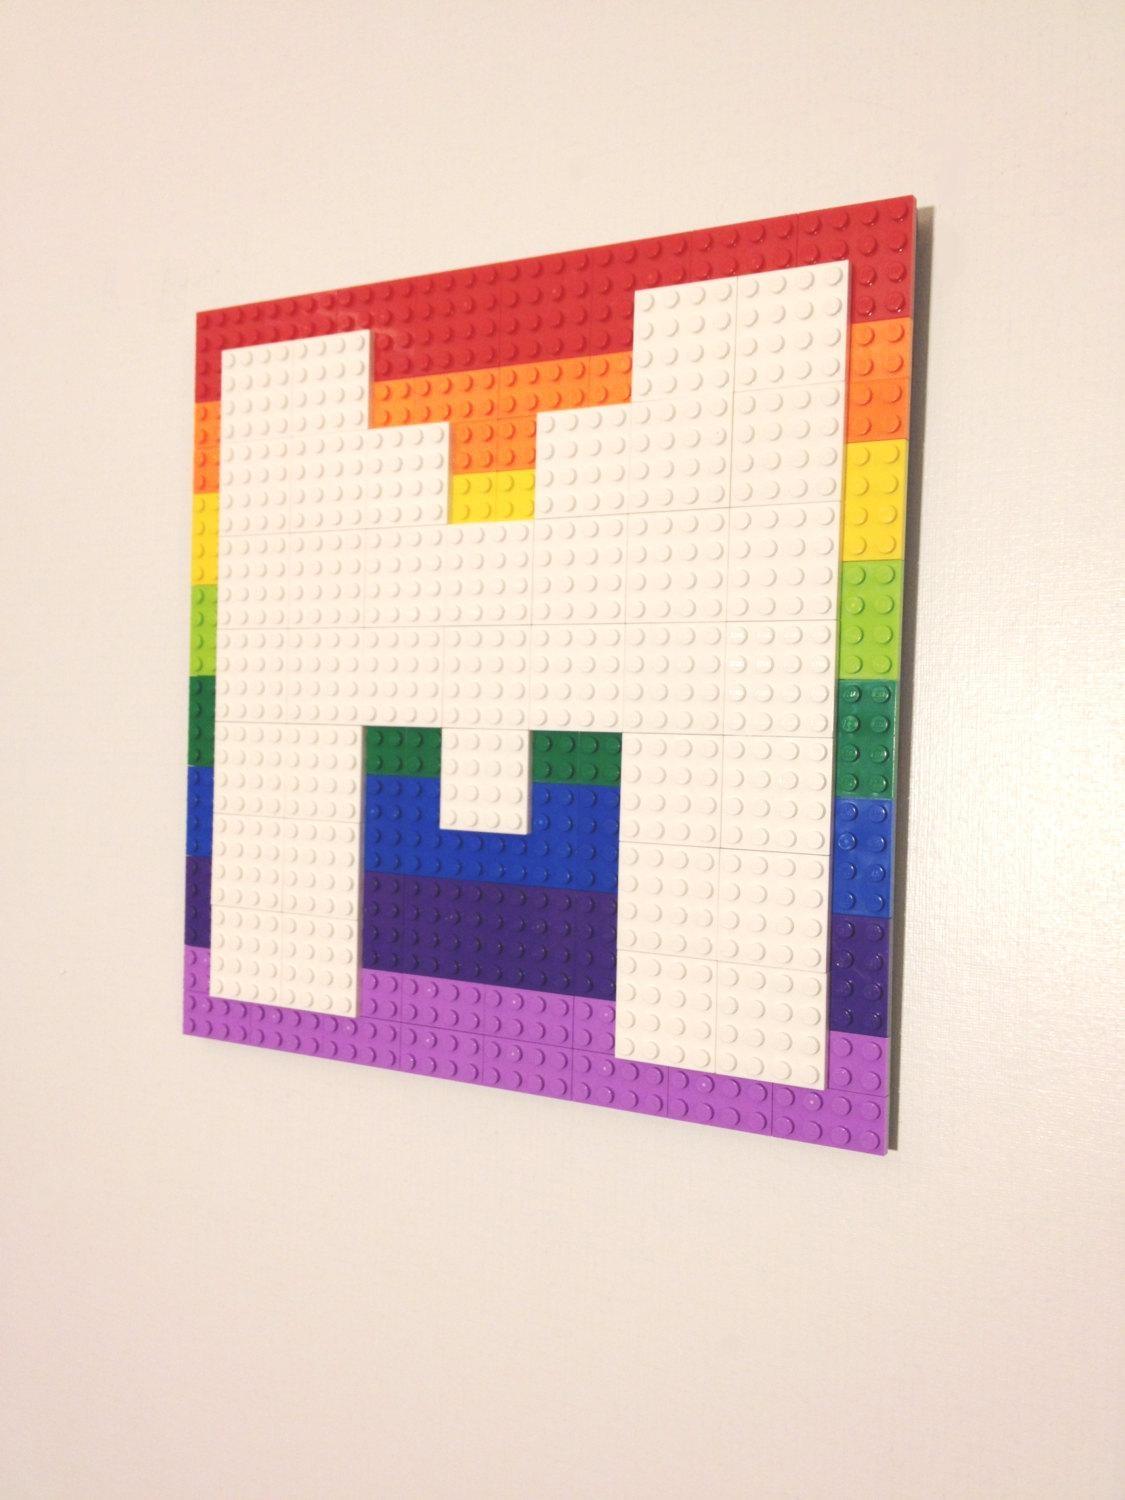 Pixel Letter Lego® Wall Art W/ Background Arcade Font Hanging Regarding Arcade Wall Art (View 5 of 20)